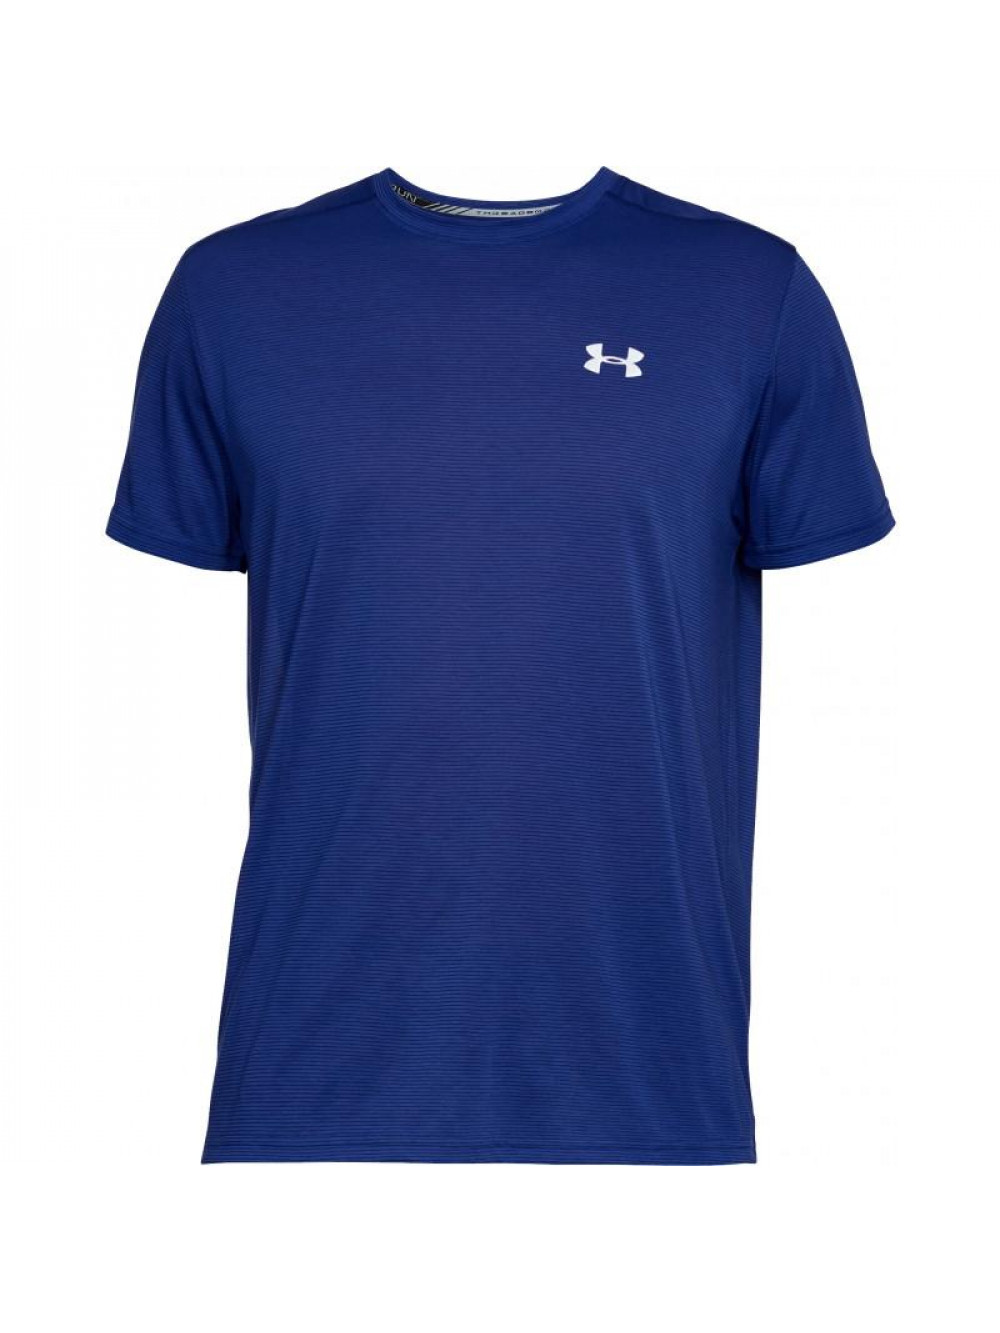 Tričko Under Armour Threadborne Run tmavomodré